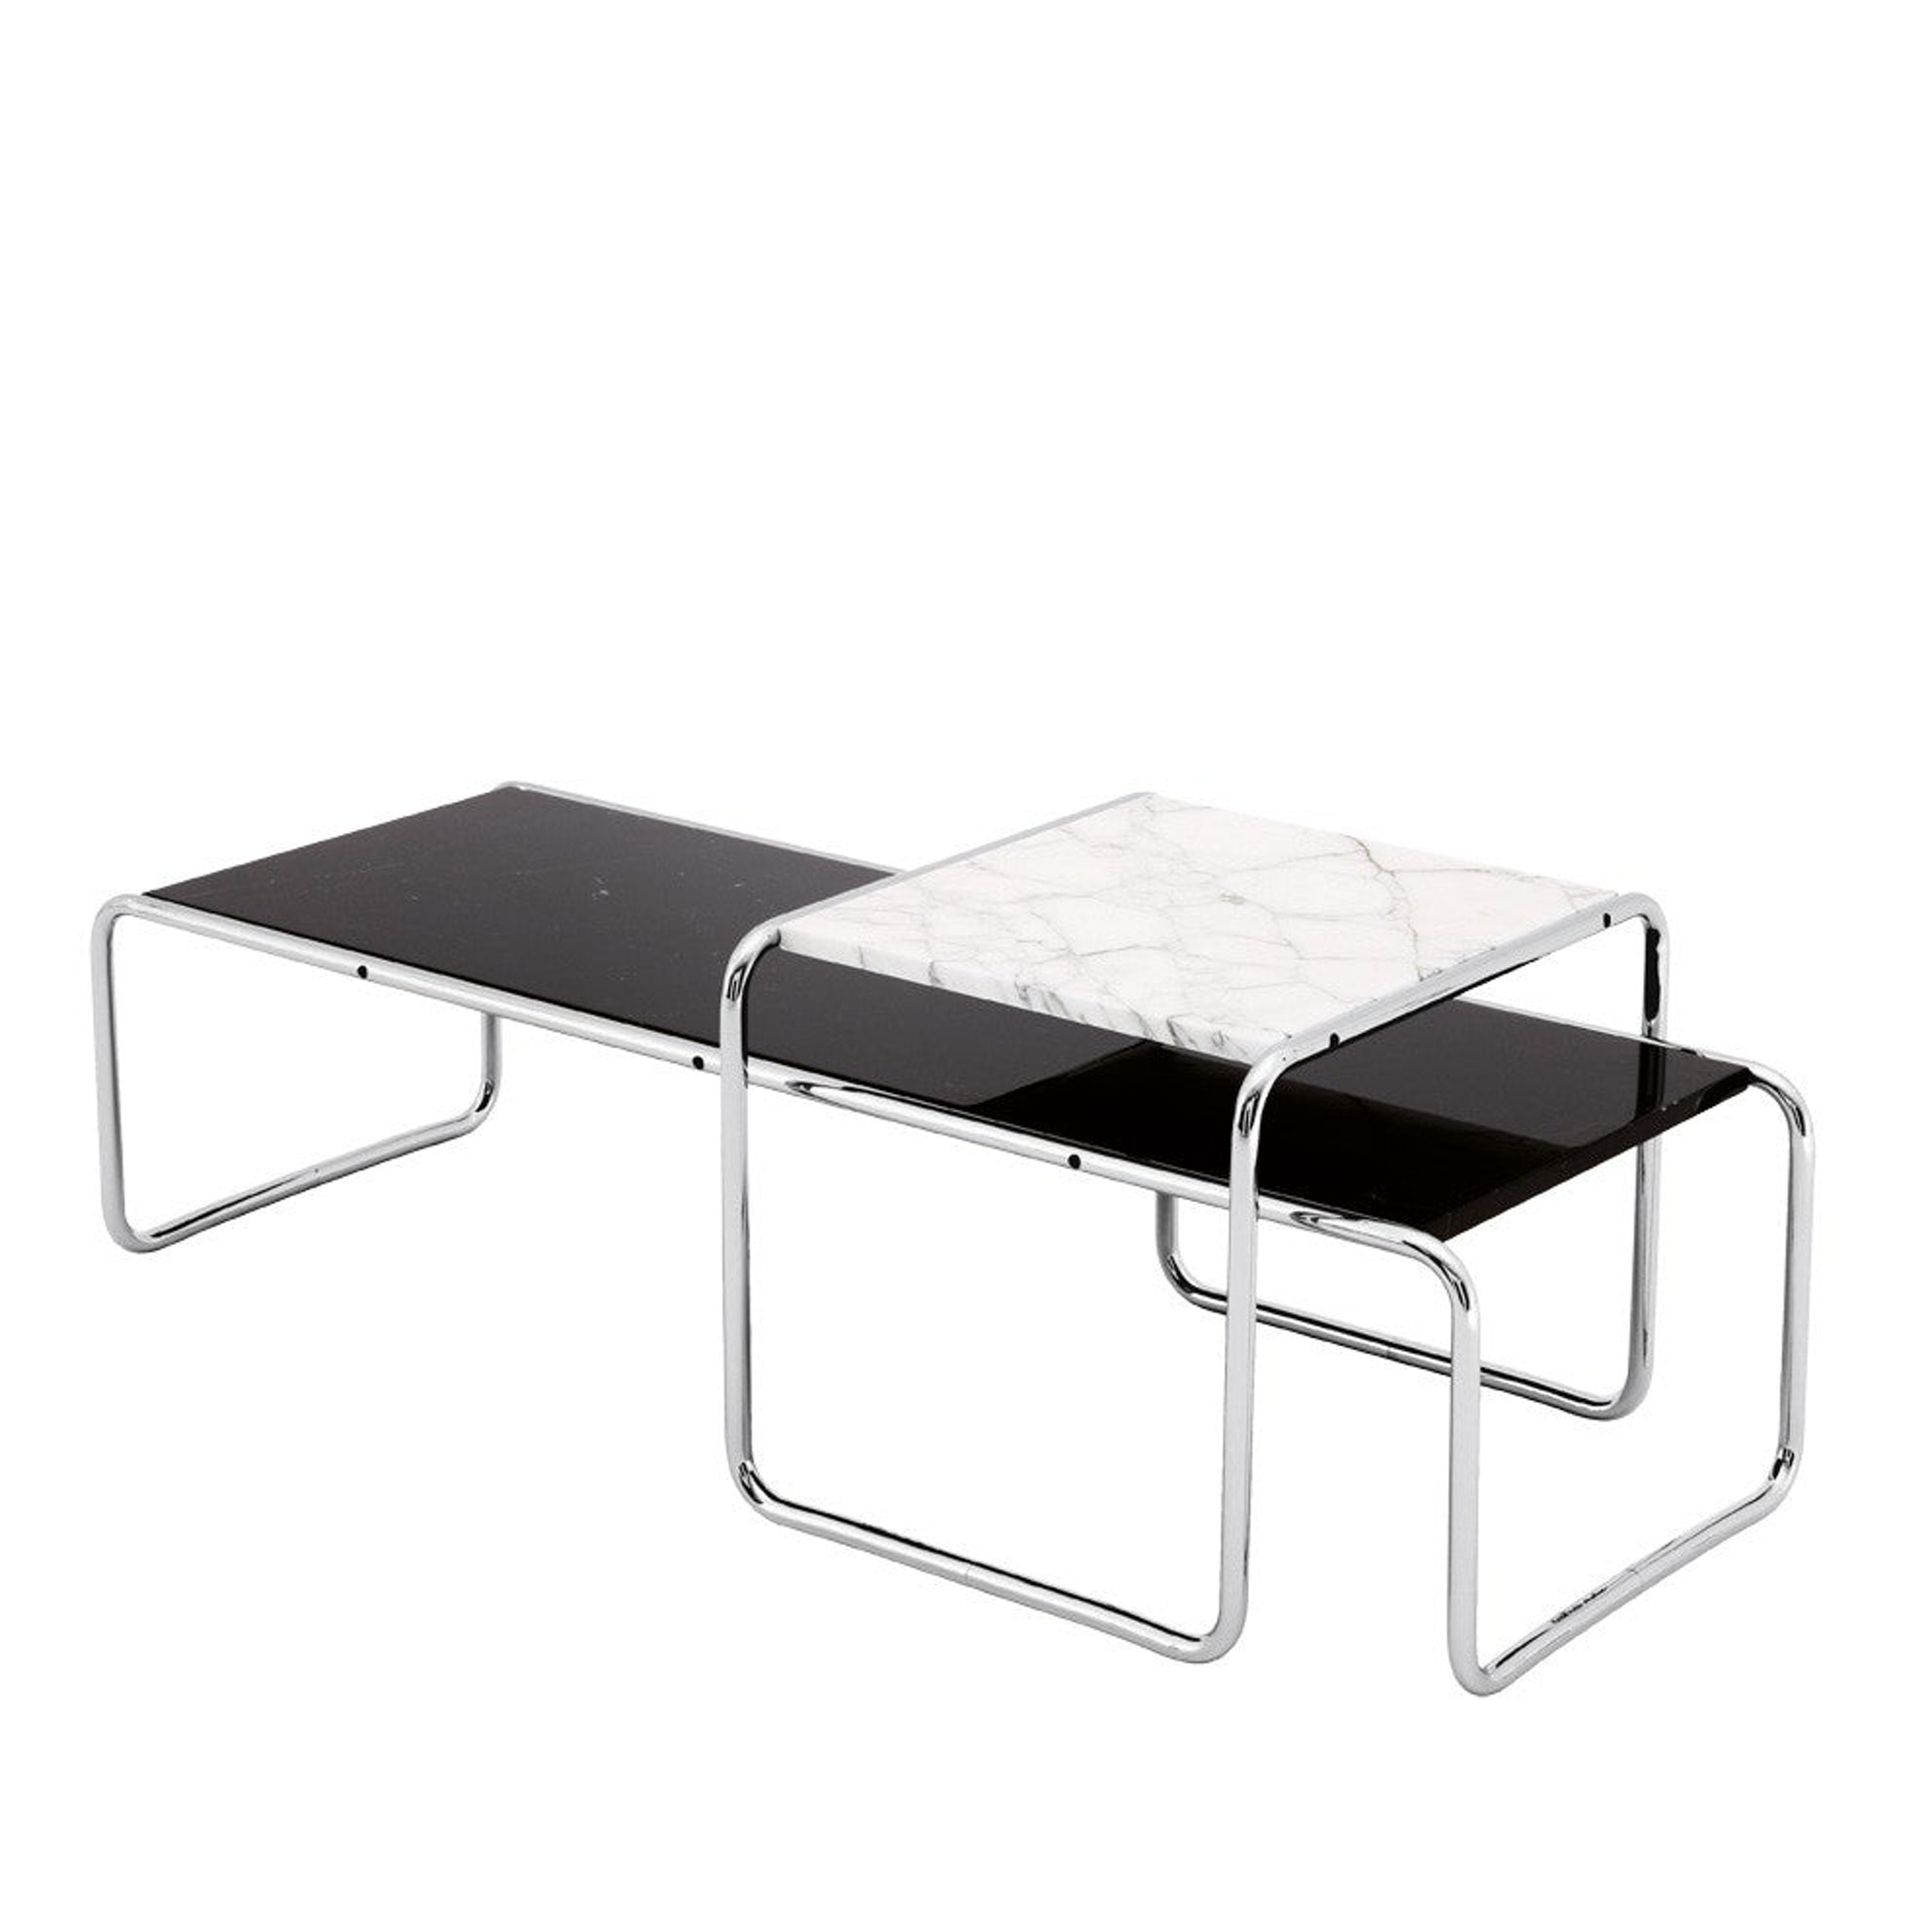 Laccio table by marcel breuer haus laccio table by marcel breuer geotapseo Choice Image